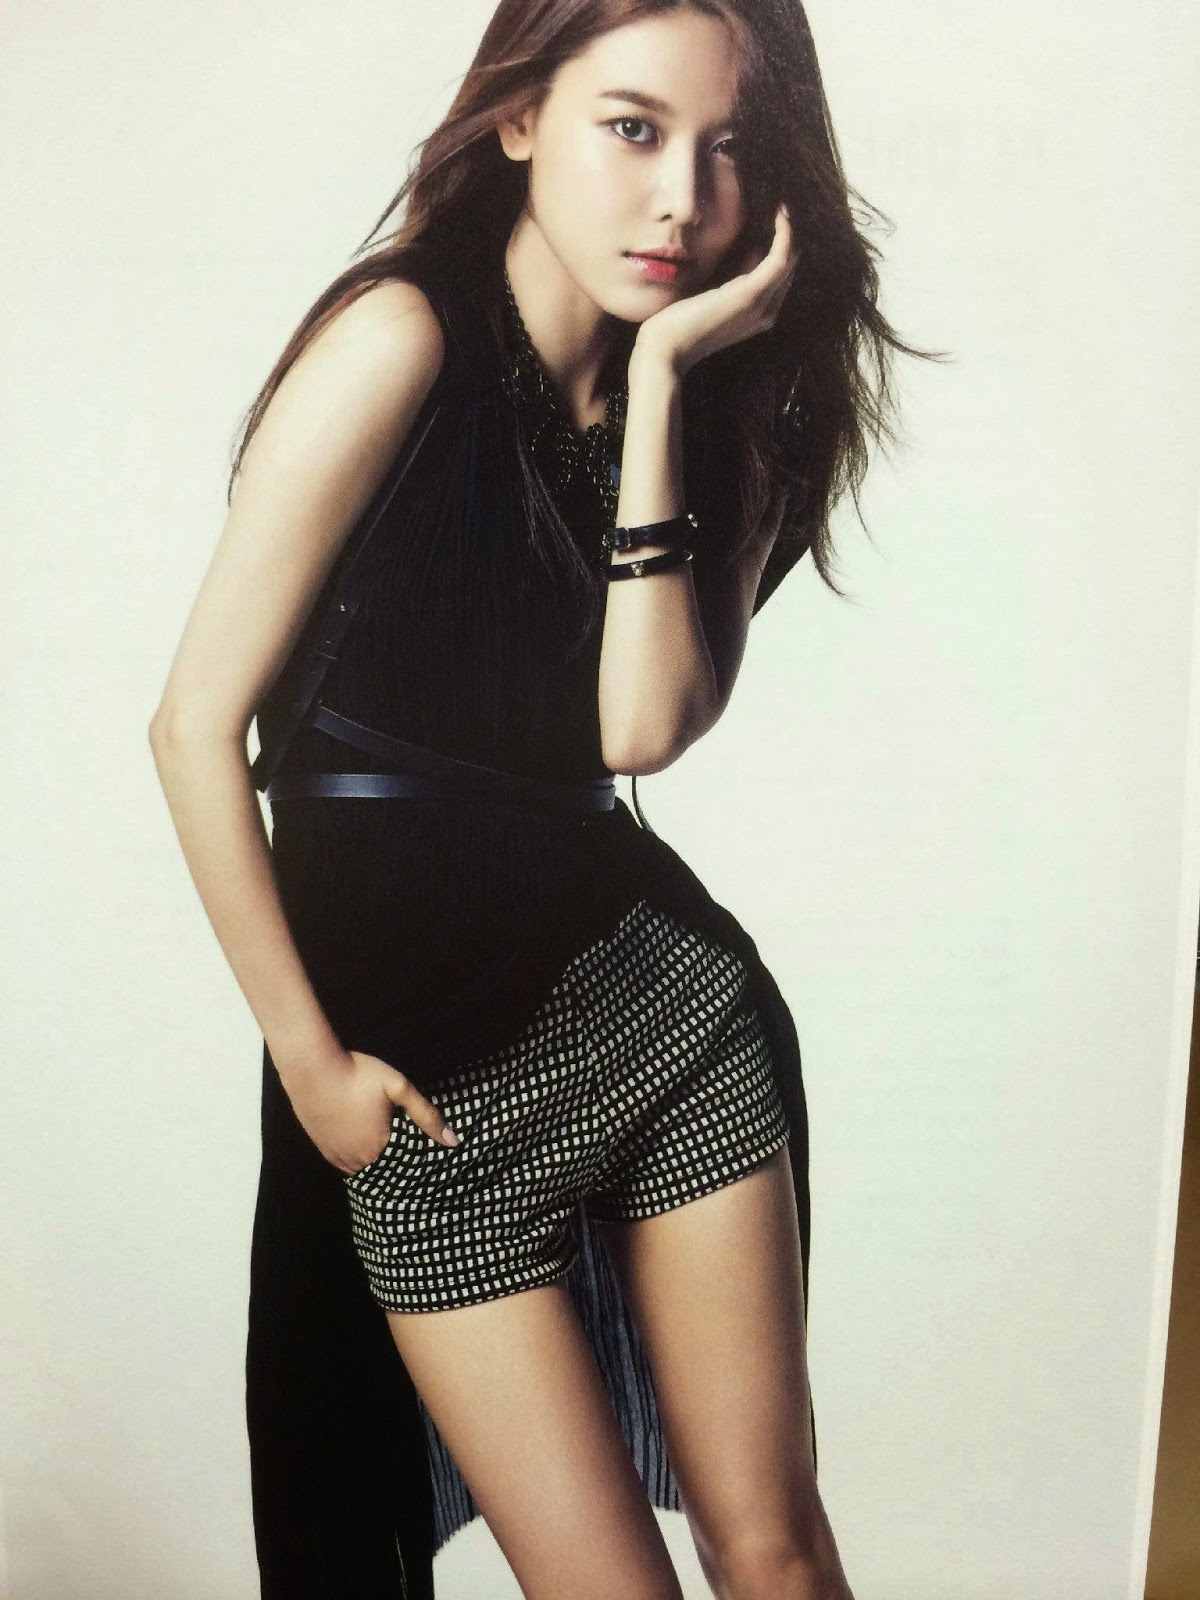 SNSD Sooyoung (수영; スヨン) Girls Generation The Best Scan Photos 3